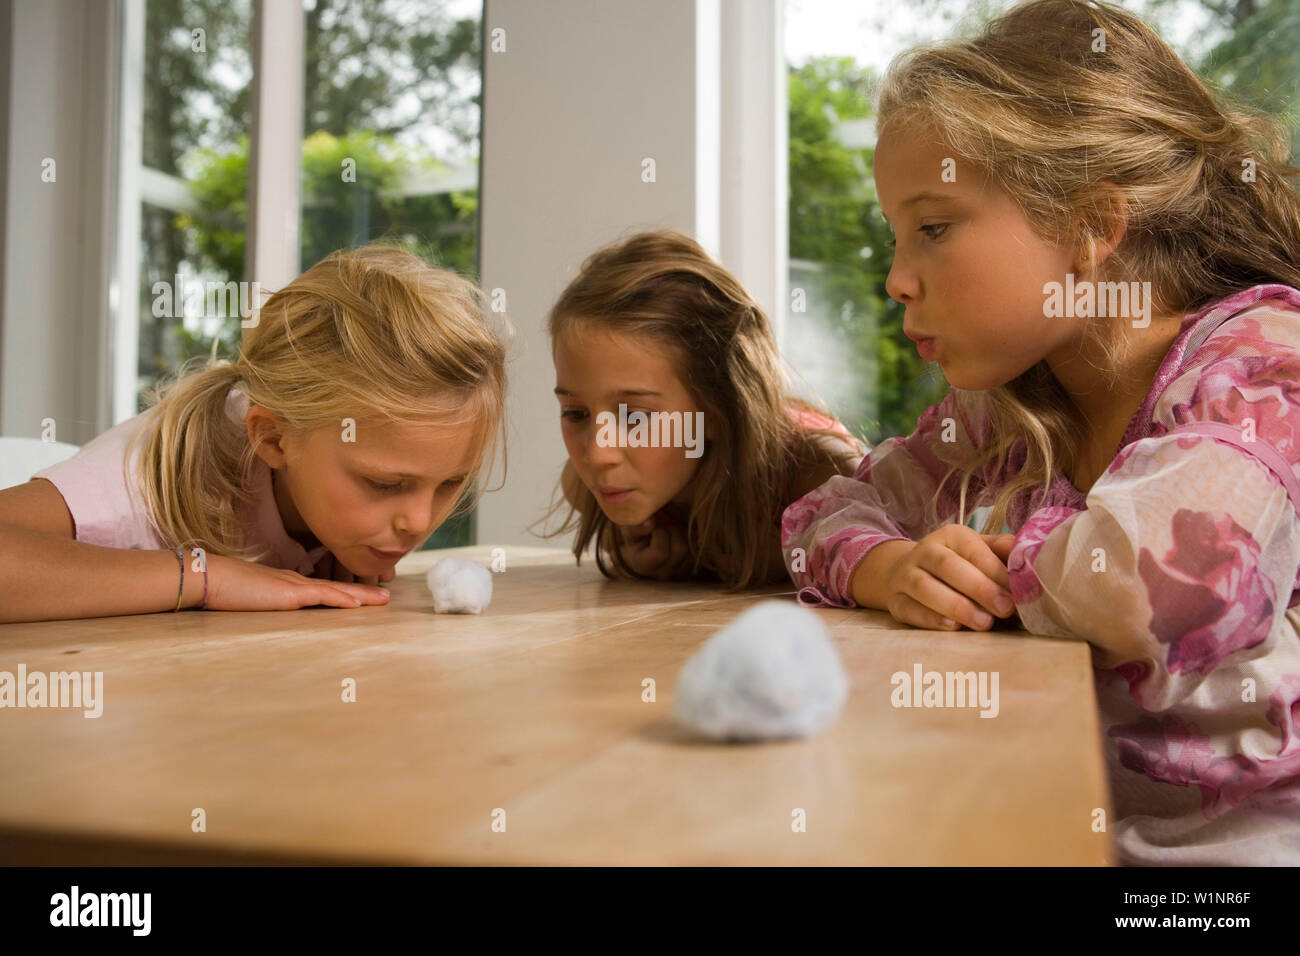 Three girls playing Blowing Cotton Wool, children's birthday party - Stock Image